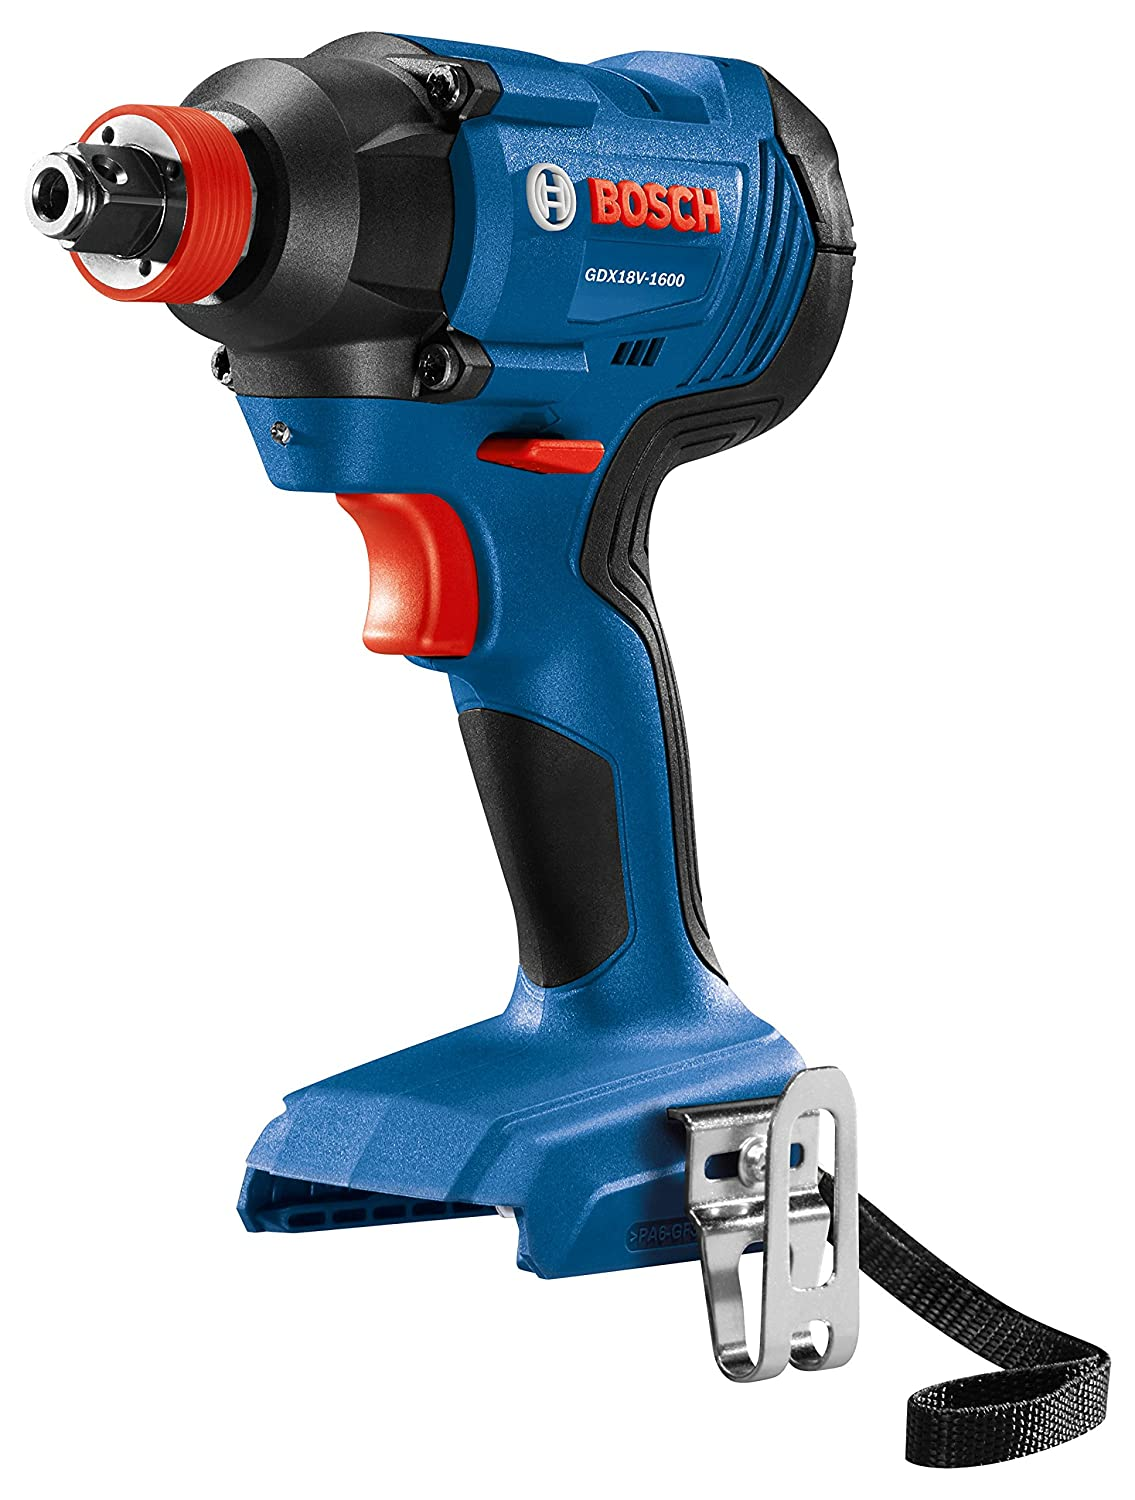 Bosch GDX18V-1600N 18V 1/4 & 1/2 Two-in-One Socket-Ready Impact Driver (Bare Tool)